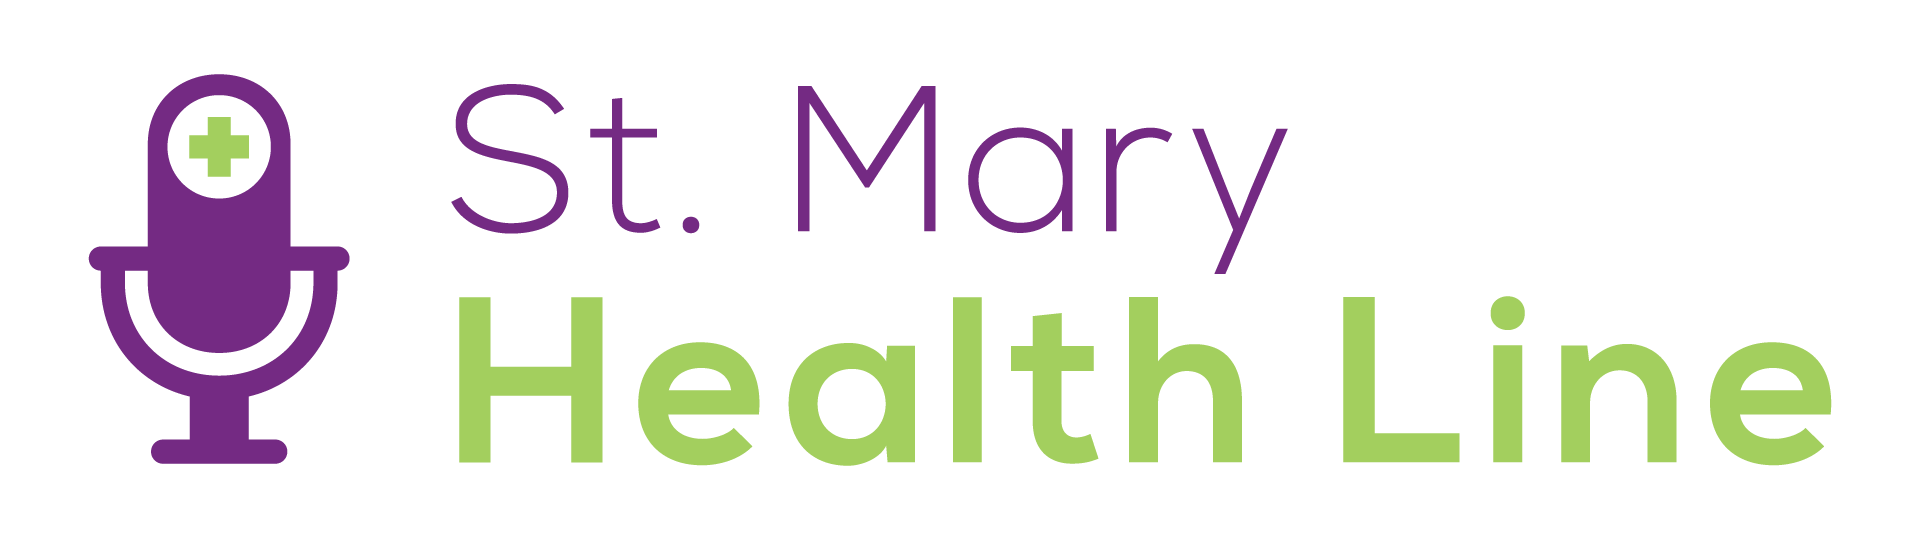 St. Mary Health Line